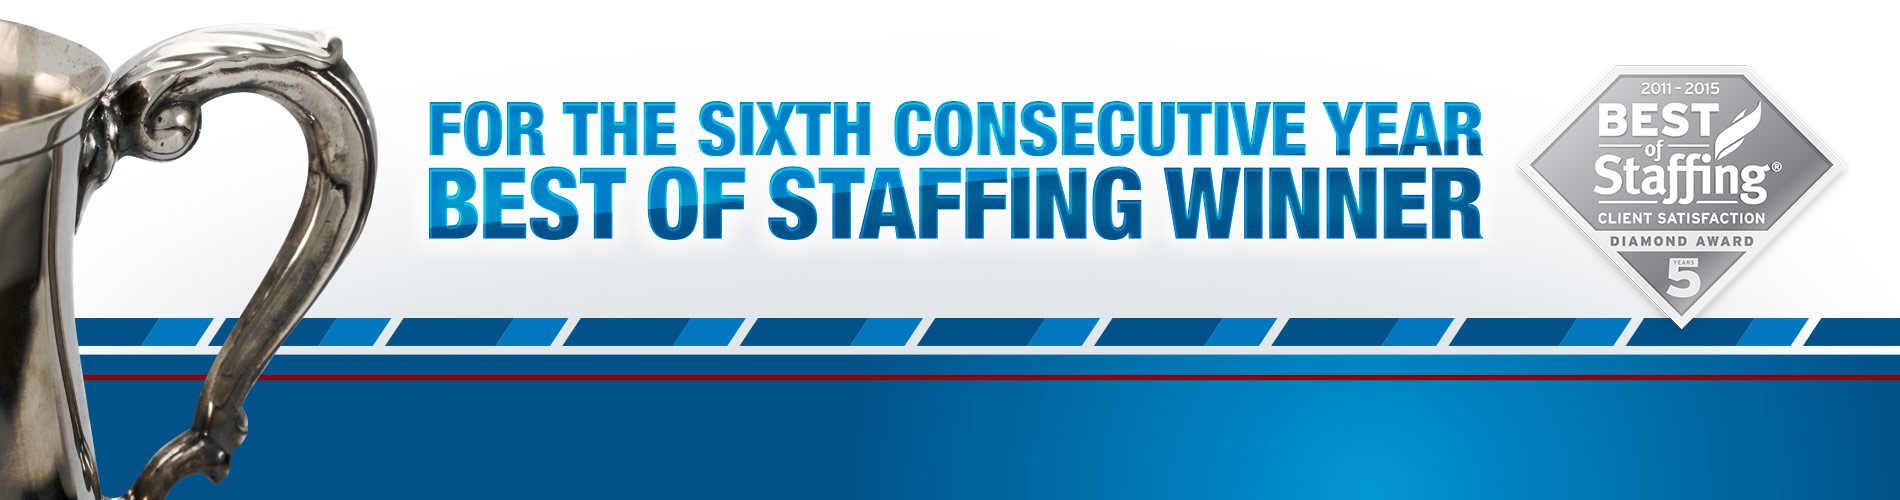 Best of Staffing Home Page Banner Image